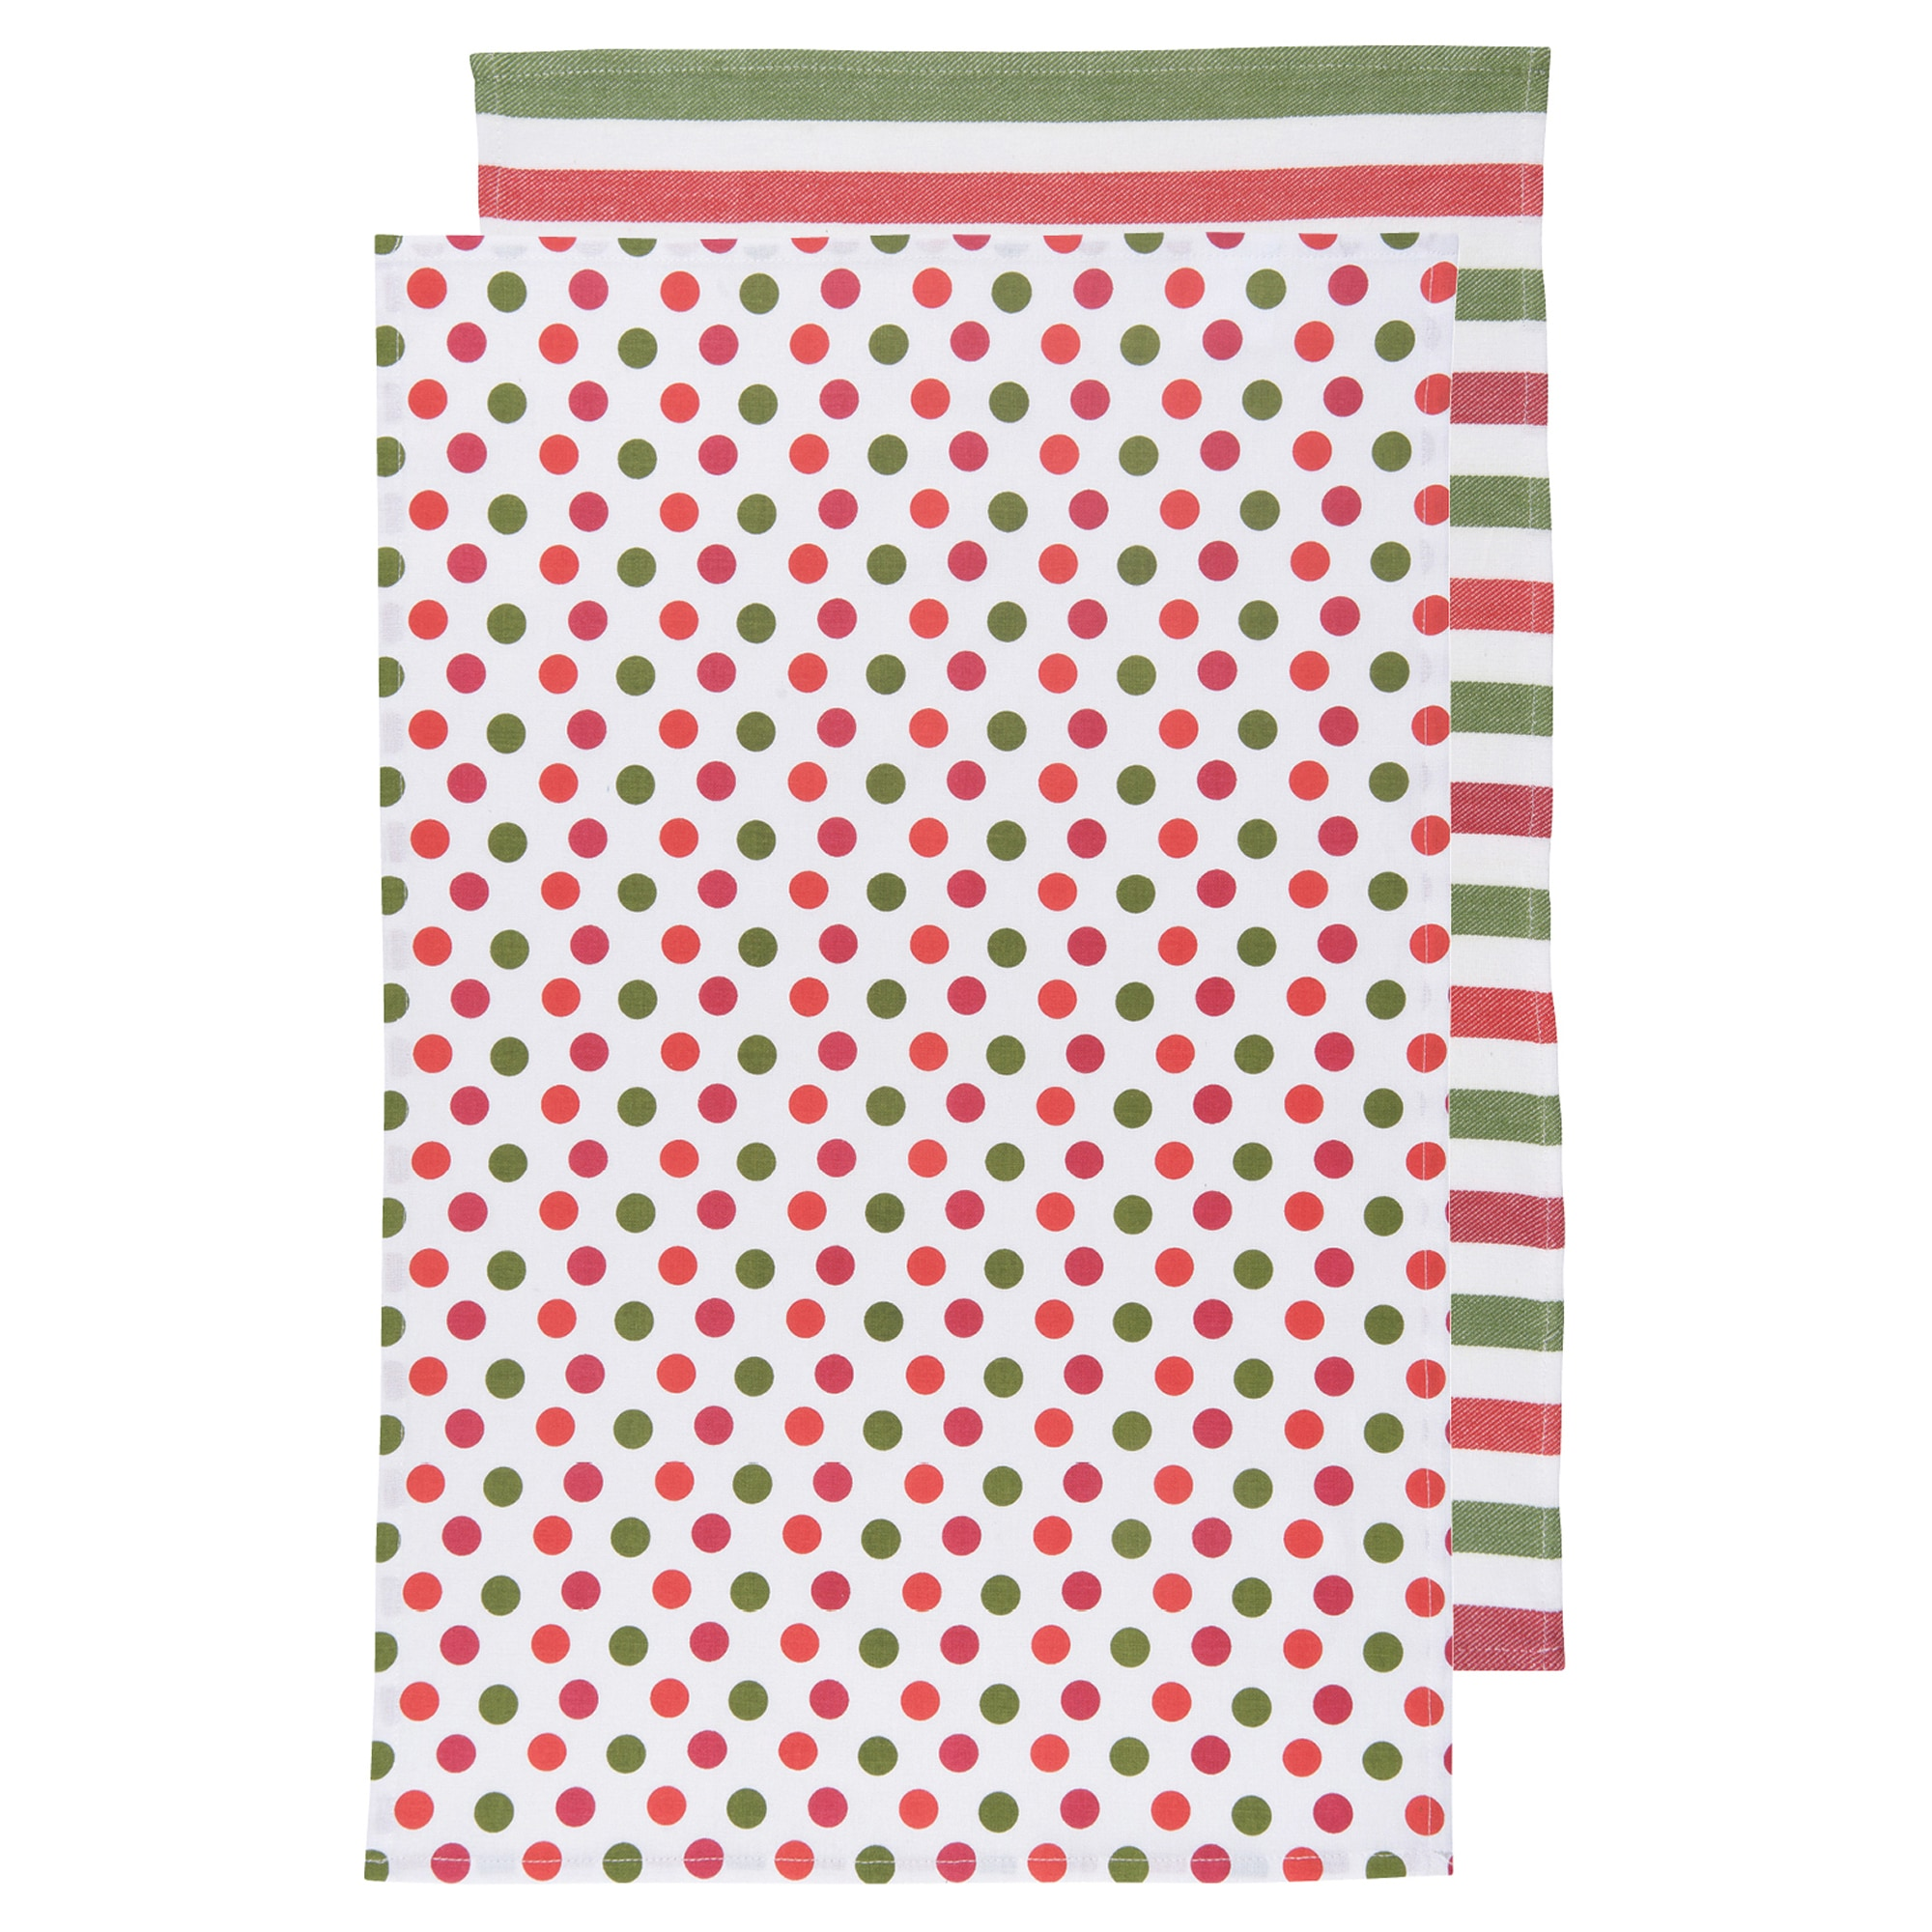 Now Designs Dotty Kitchen Towels, Set of 2 by Now Designs